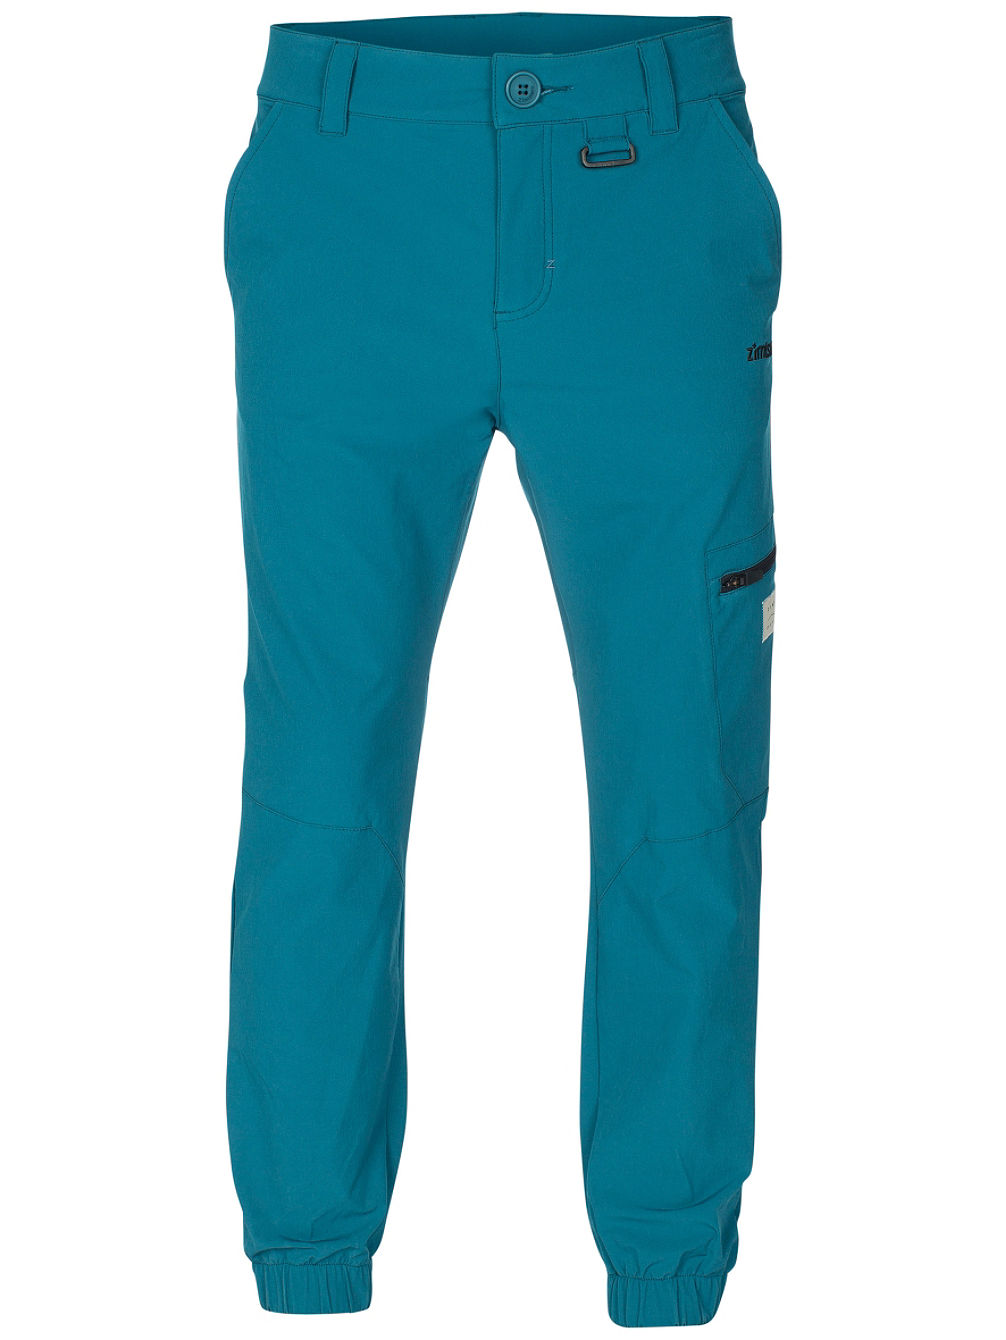 Klaaz Outdoor Pants